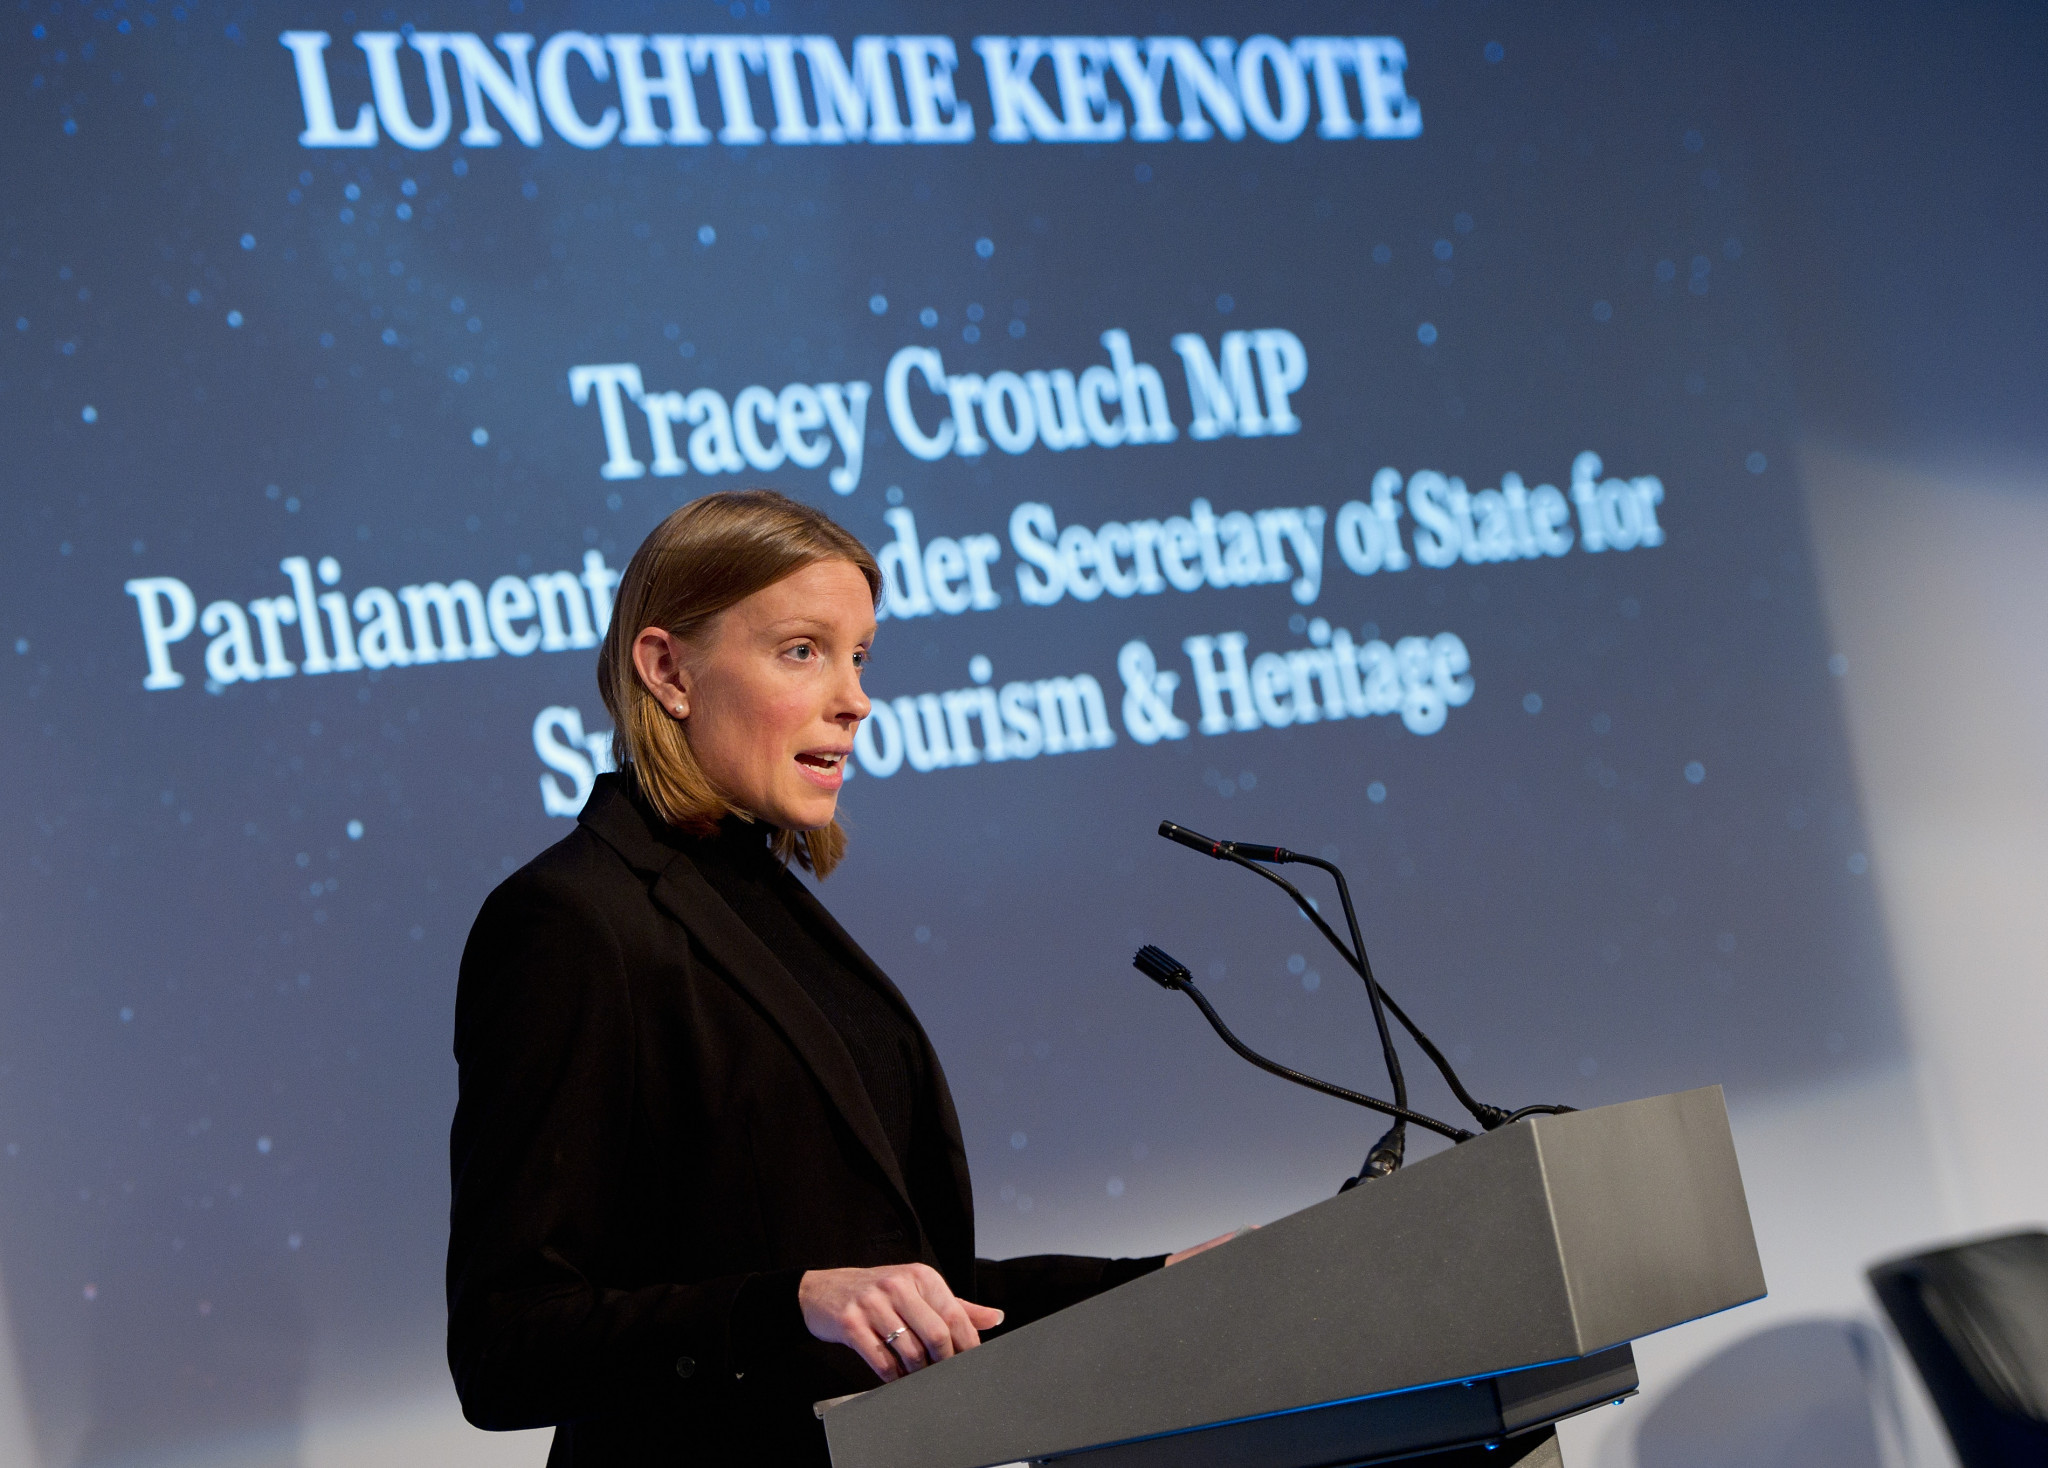 British Sports Minister Tracey Crouch said the Aspiration Fund will give more sports the chance to inspire the nation and shine at Tokyo 2020 and beyond ©Getty Images